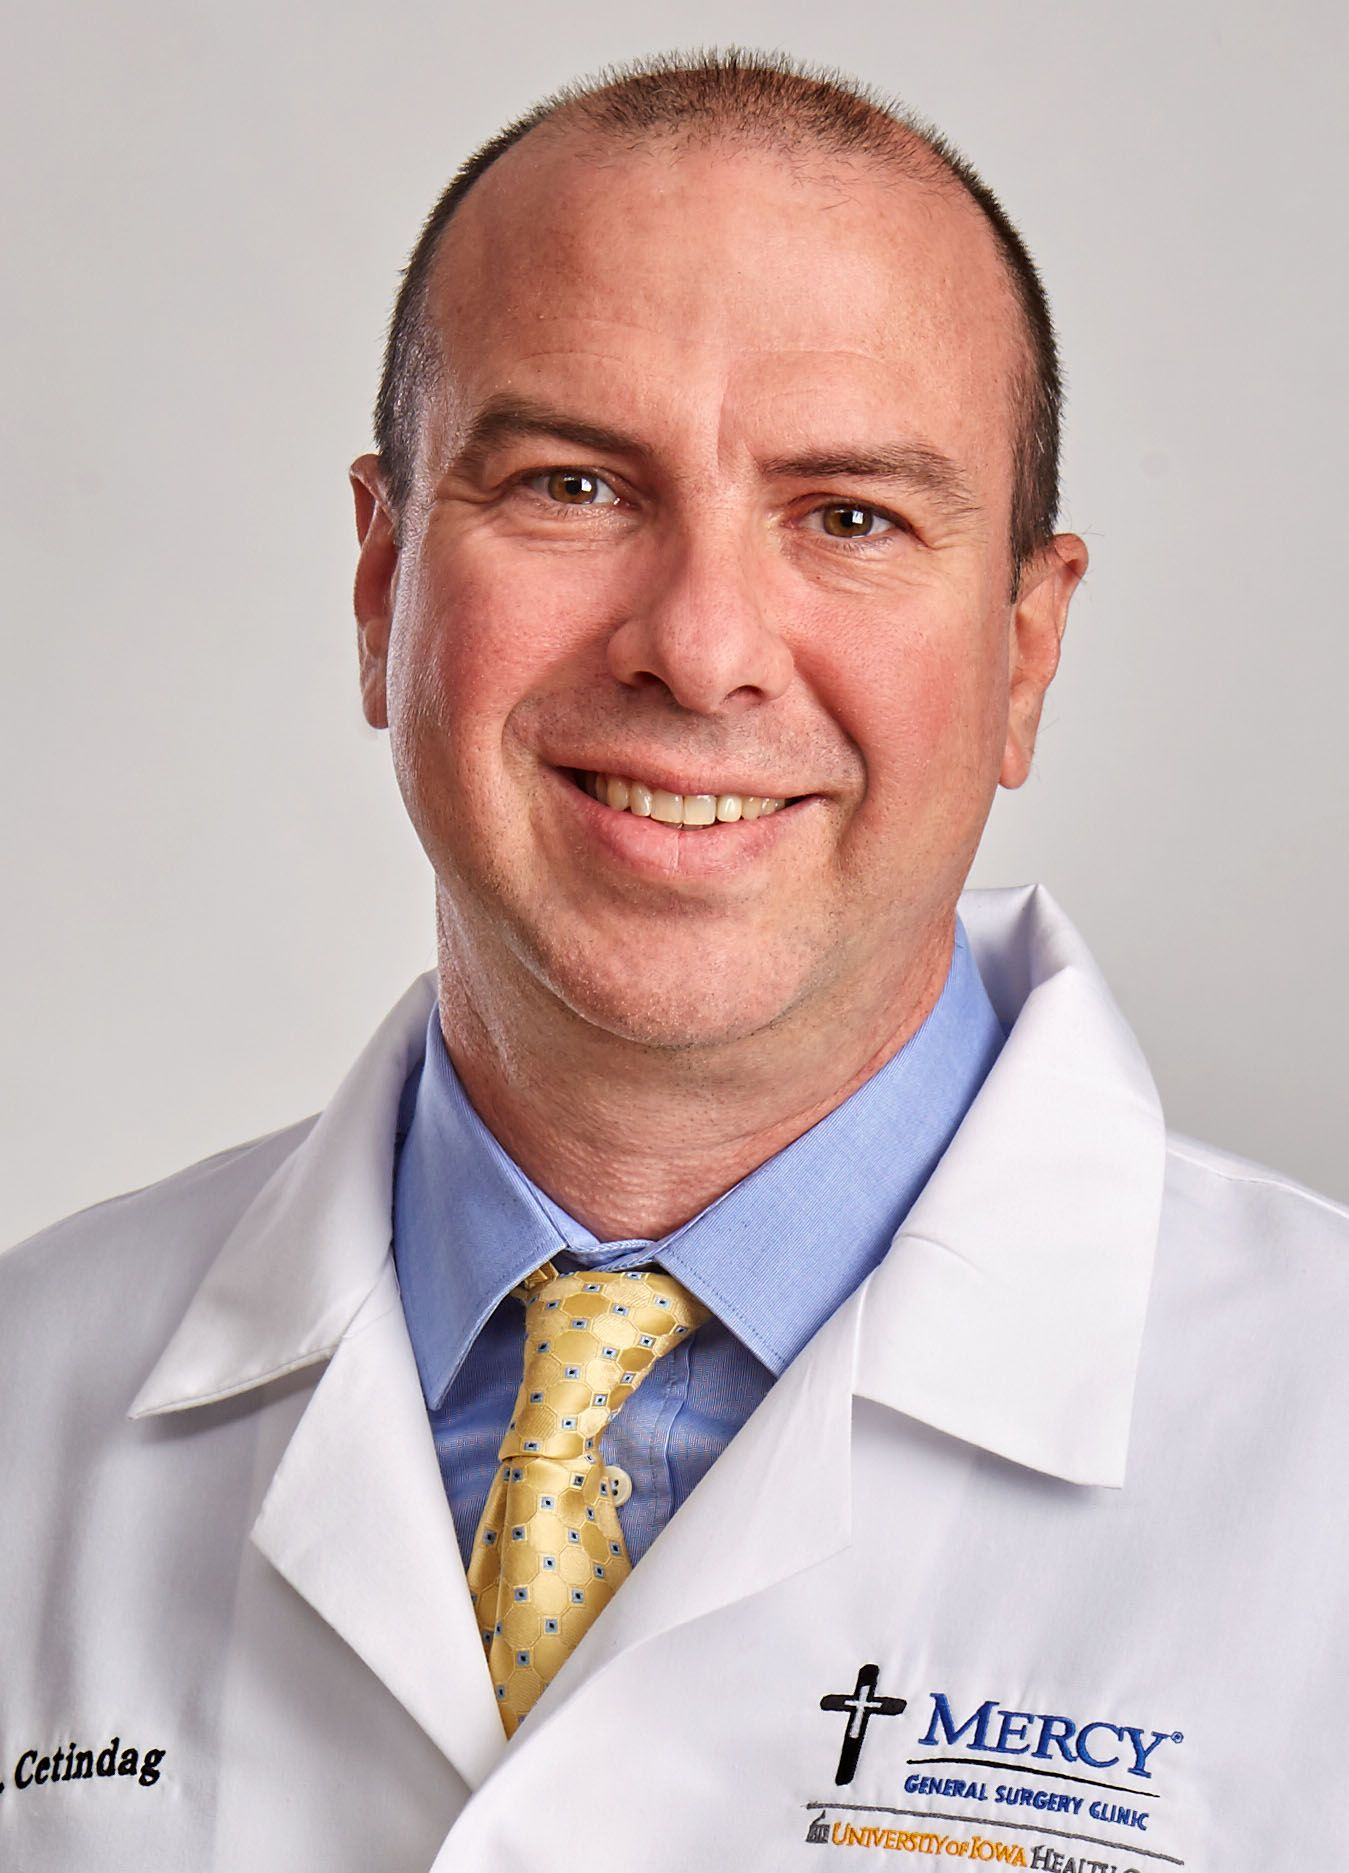 Bulent Cetindag, MD, joined Mercy General Surgery Clinic